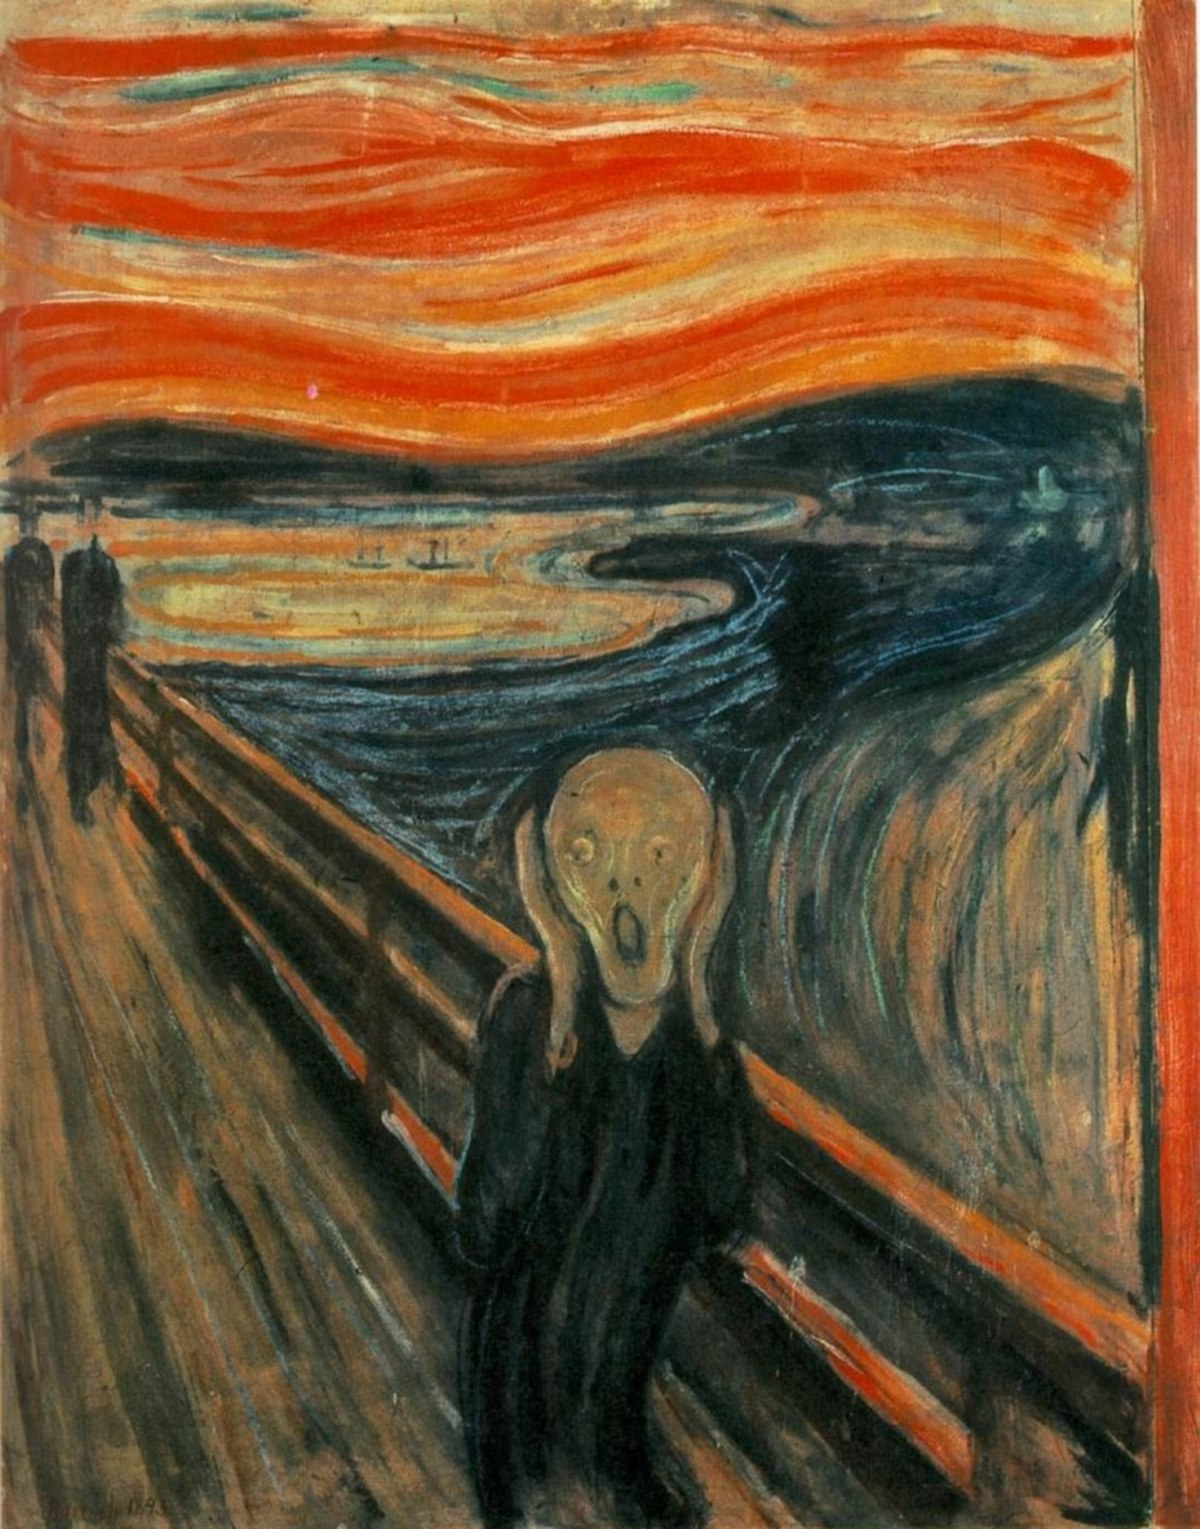 The Scream,Edvard Munch, oil, 1893, (Image courtesy of the National Gallery, Oslo, Norway